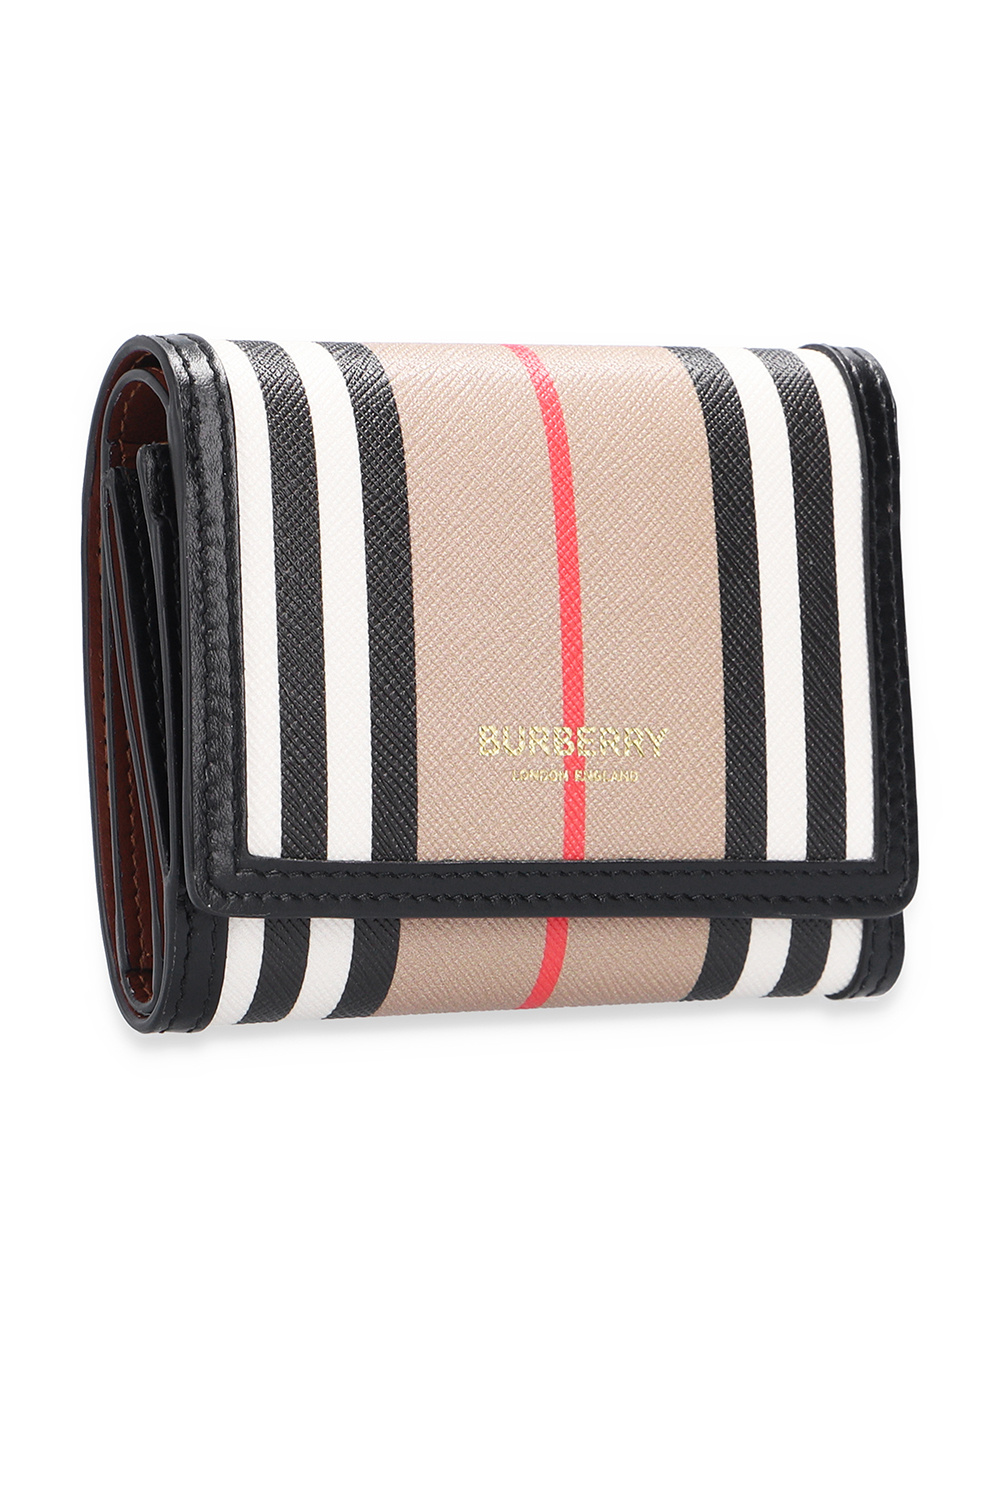 Burberry Wallet with logo